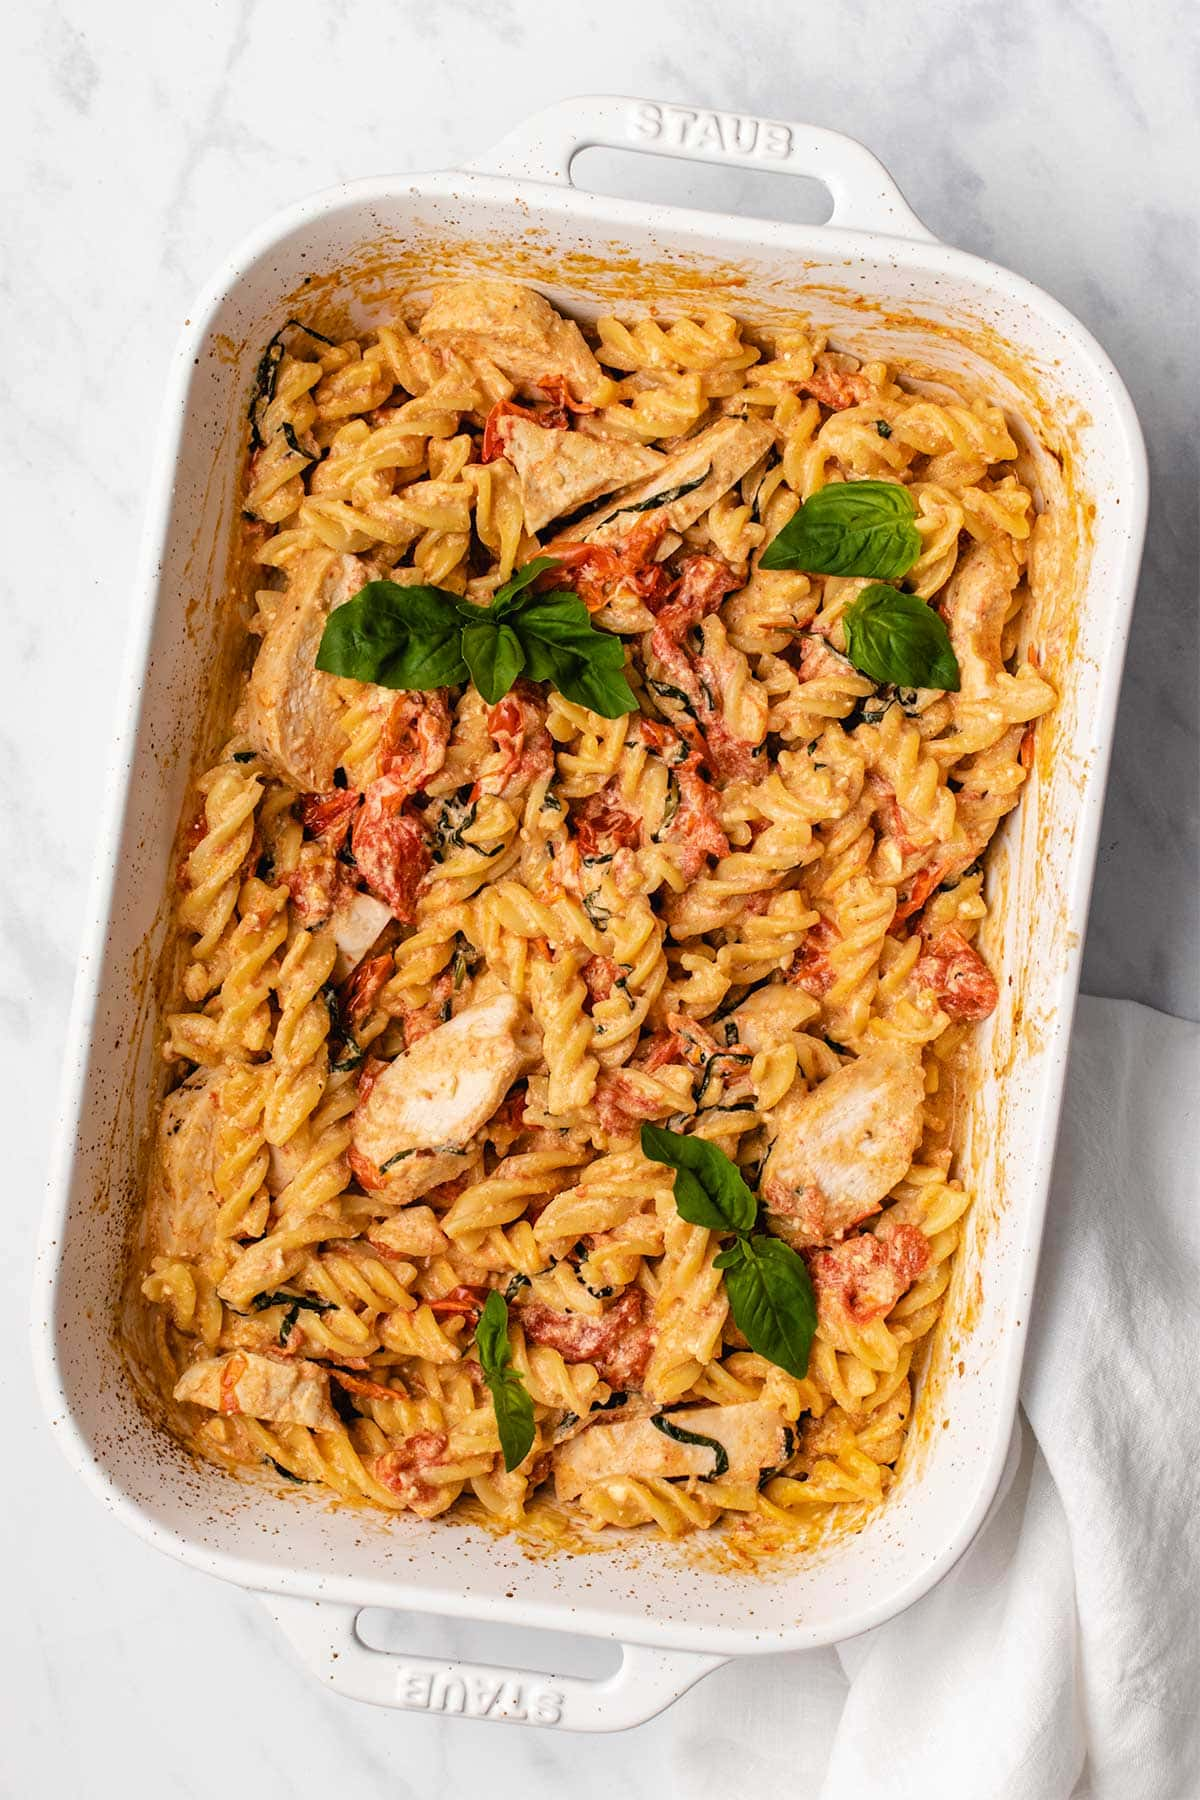 Baked Feta Chicken Pasta in a white casserole dish garnished with fresh basil.